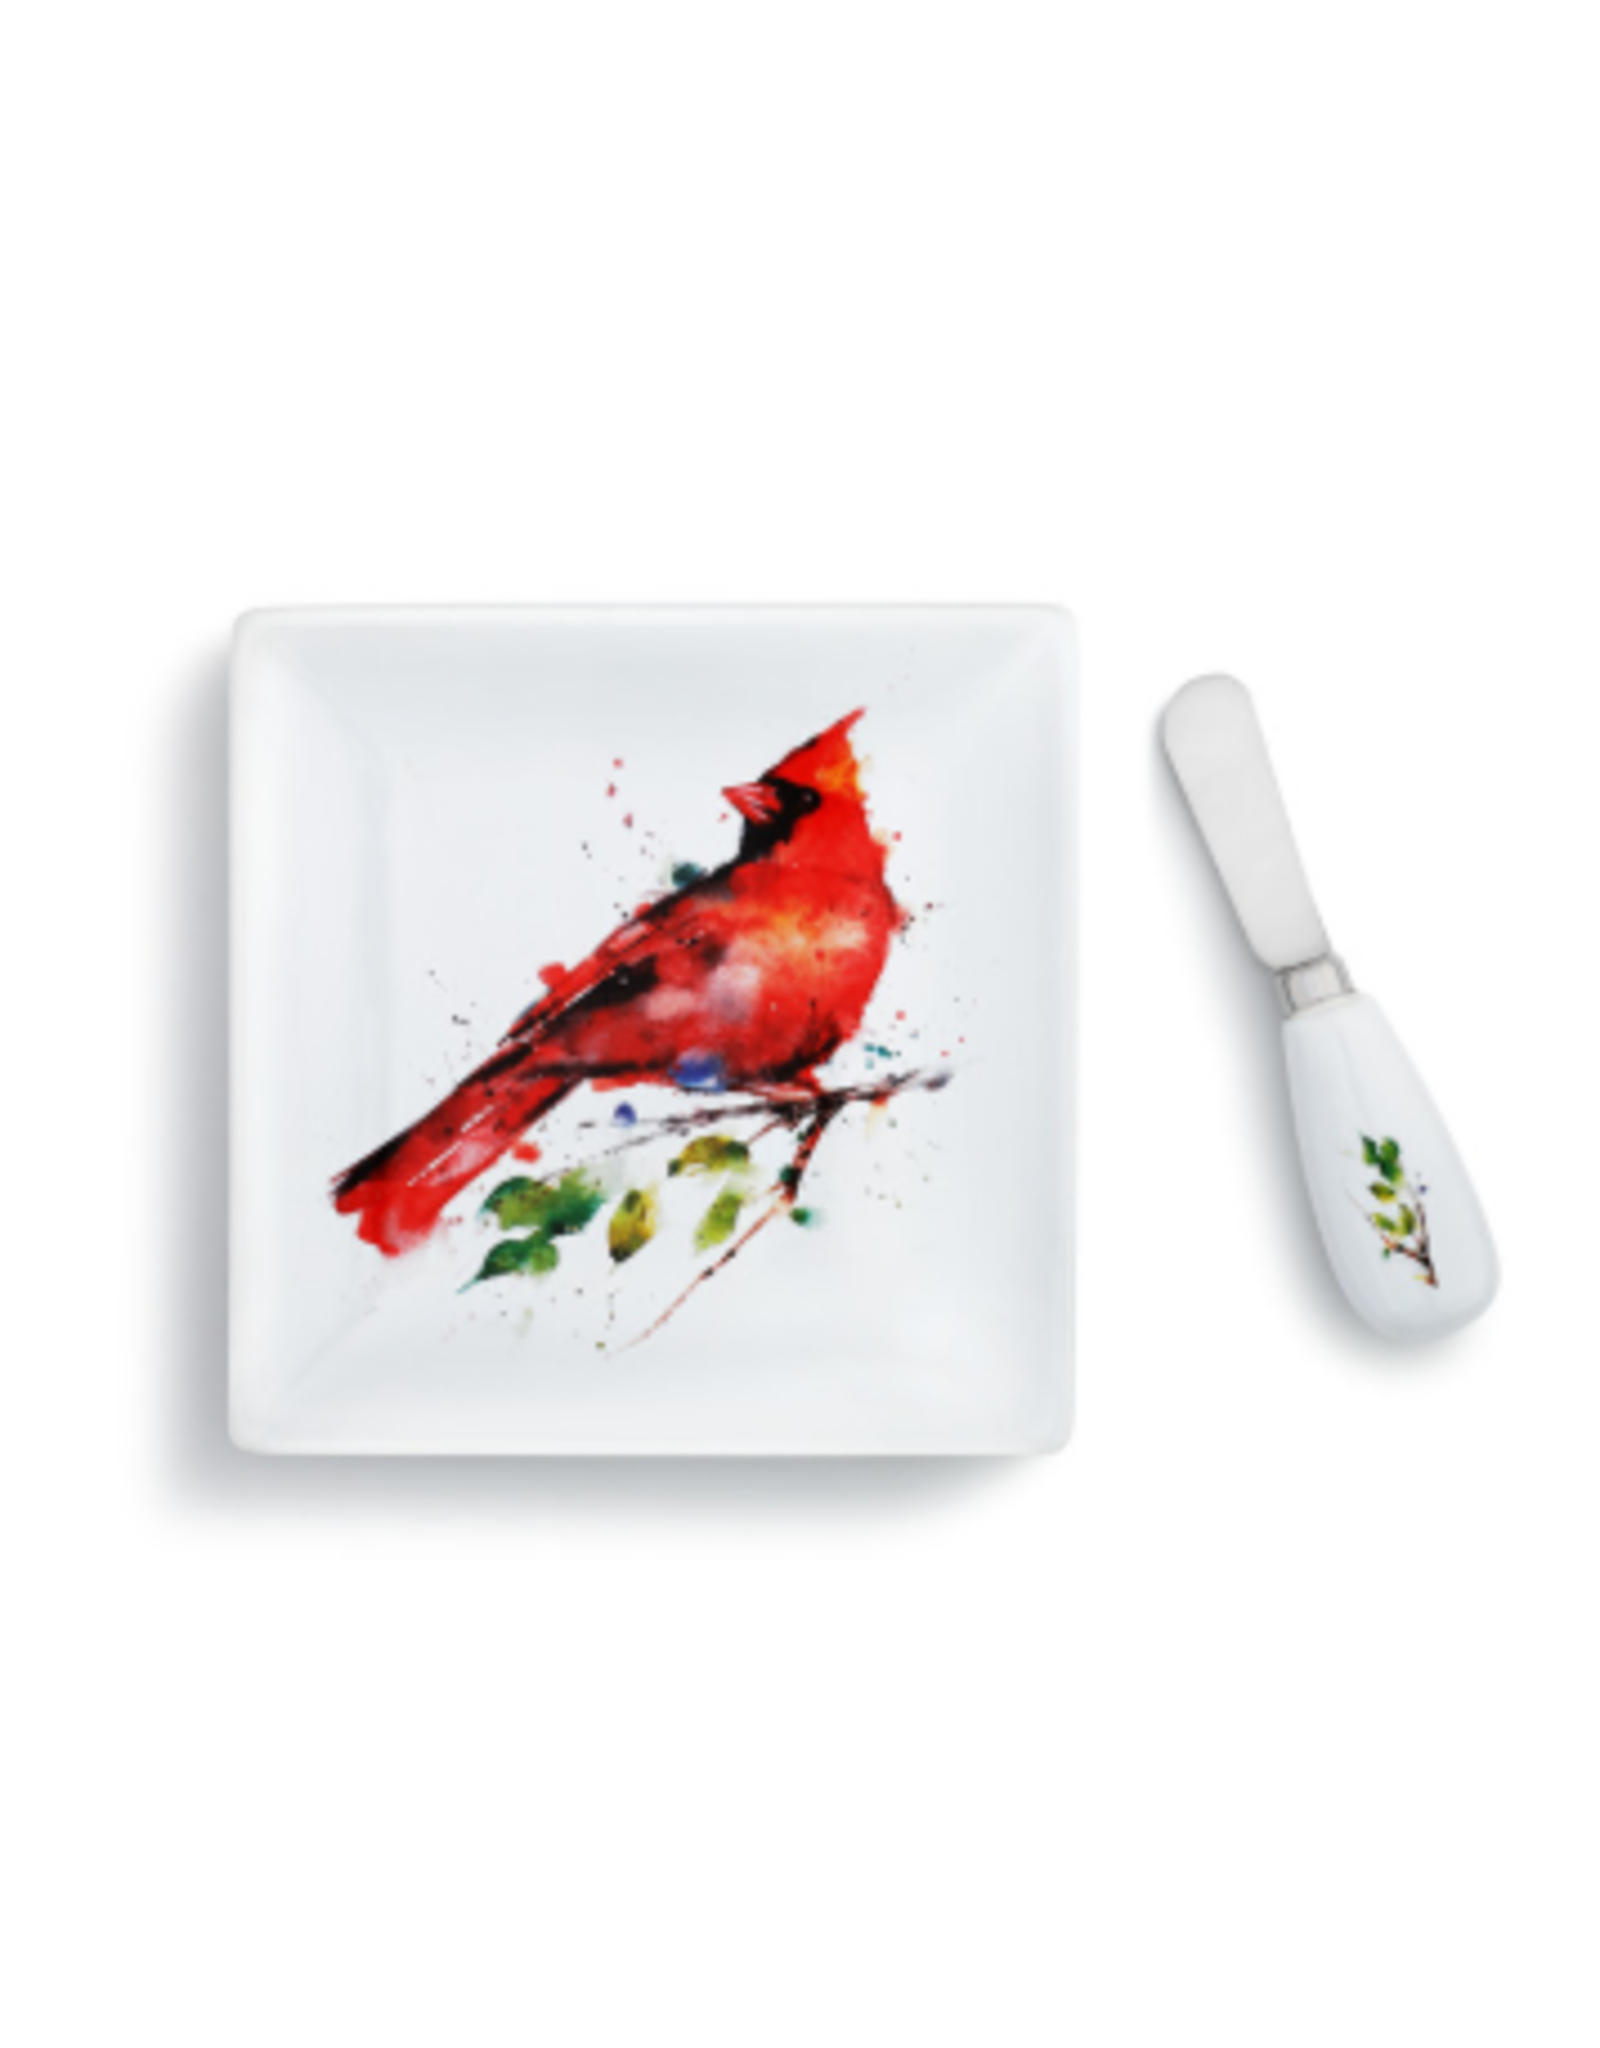 Demdaco CARDINAL PLATE WITH SPREADER